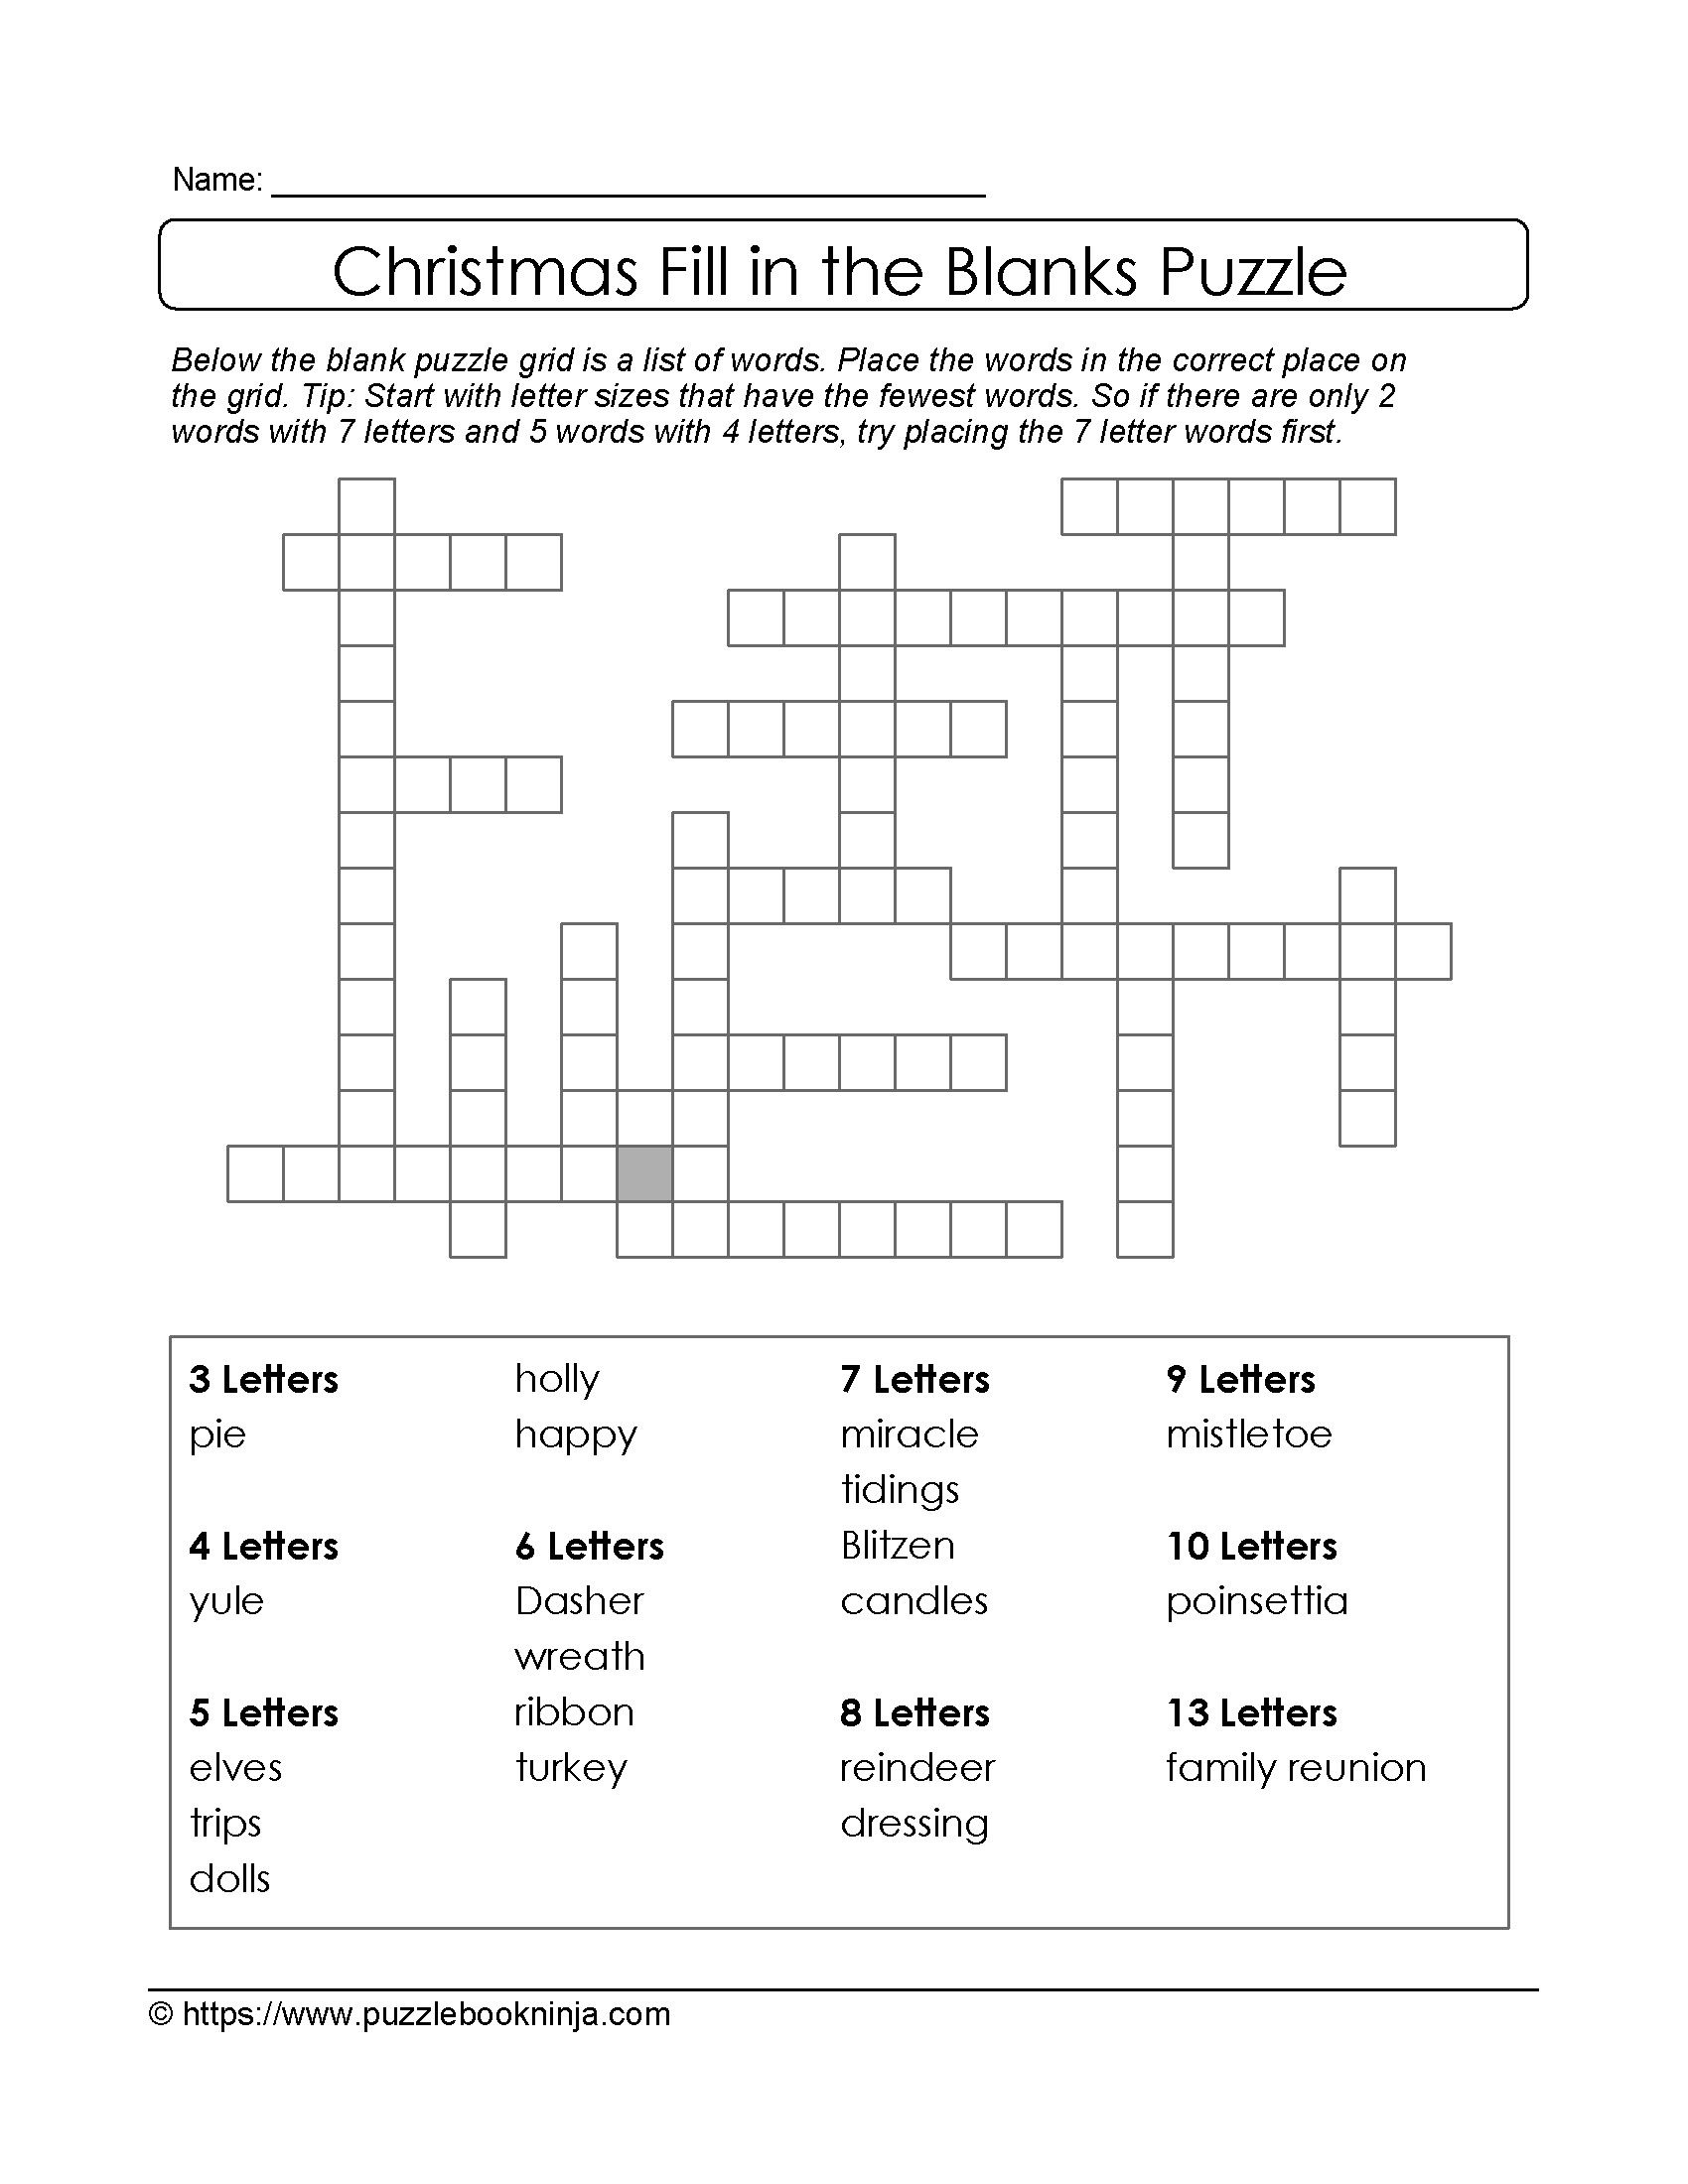 Puzzles To Print. Downloadable Christmas Puzzle. | Christmas Puzzles - Printable Science Puzzle